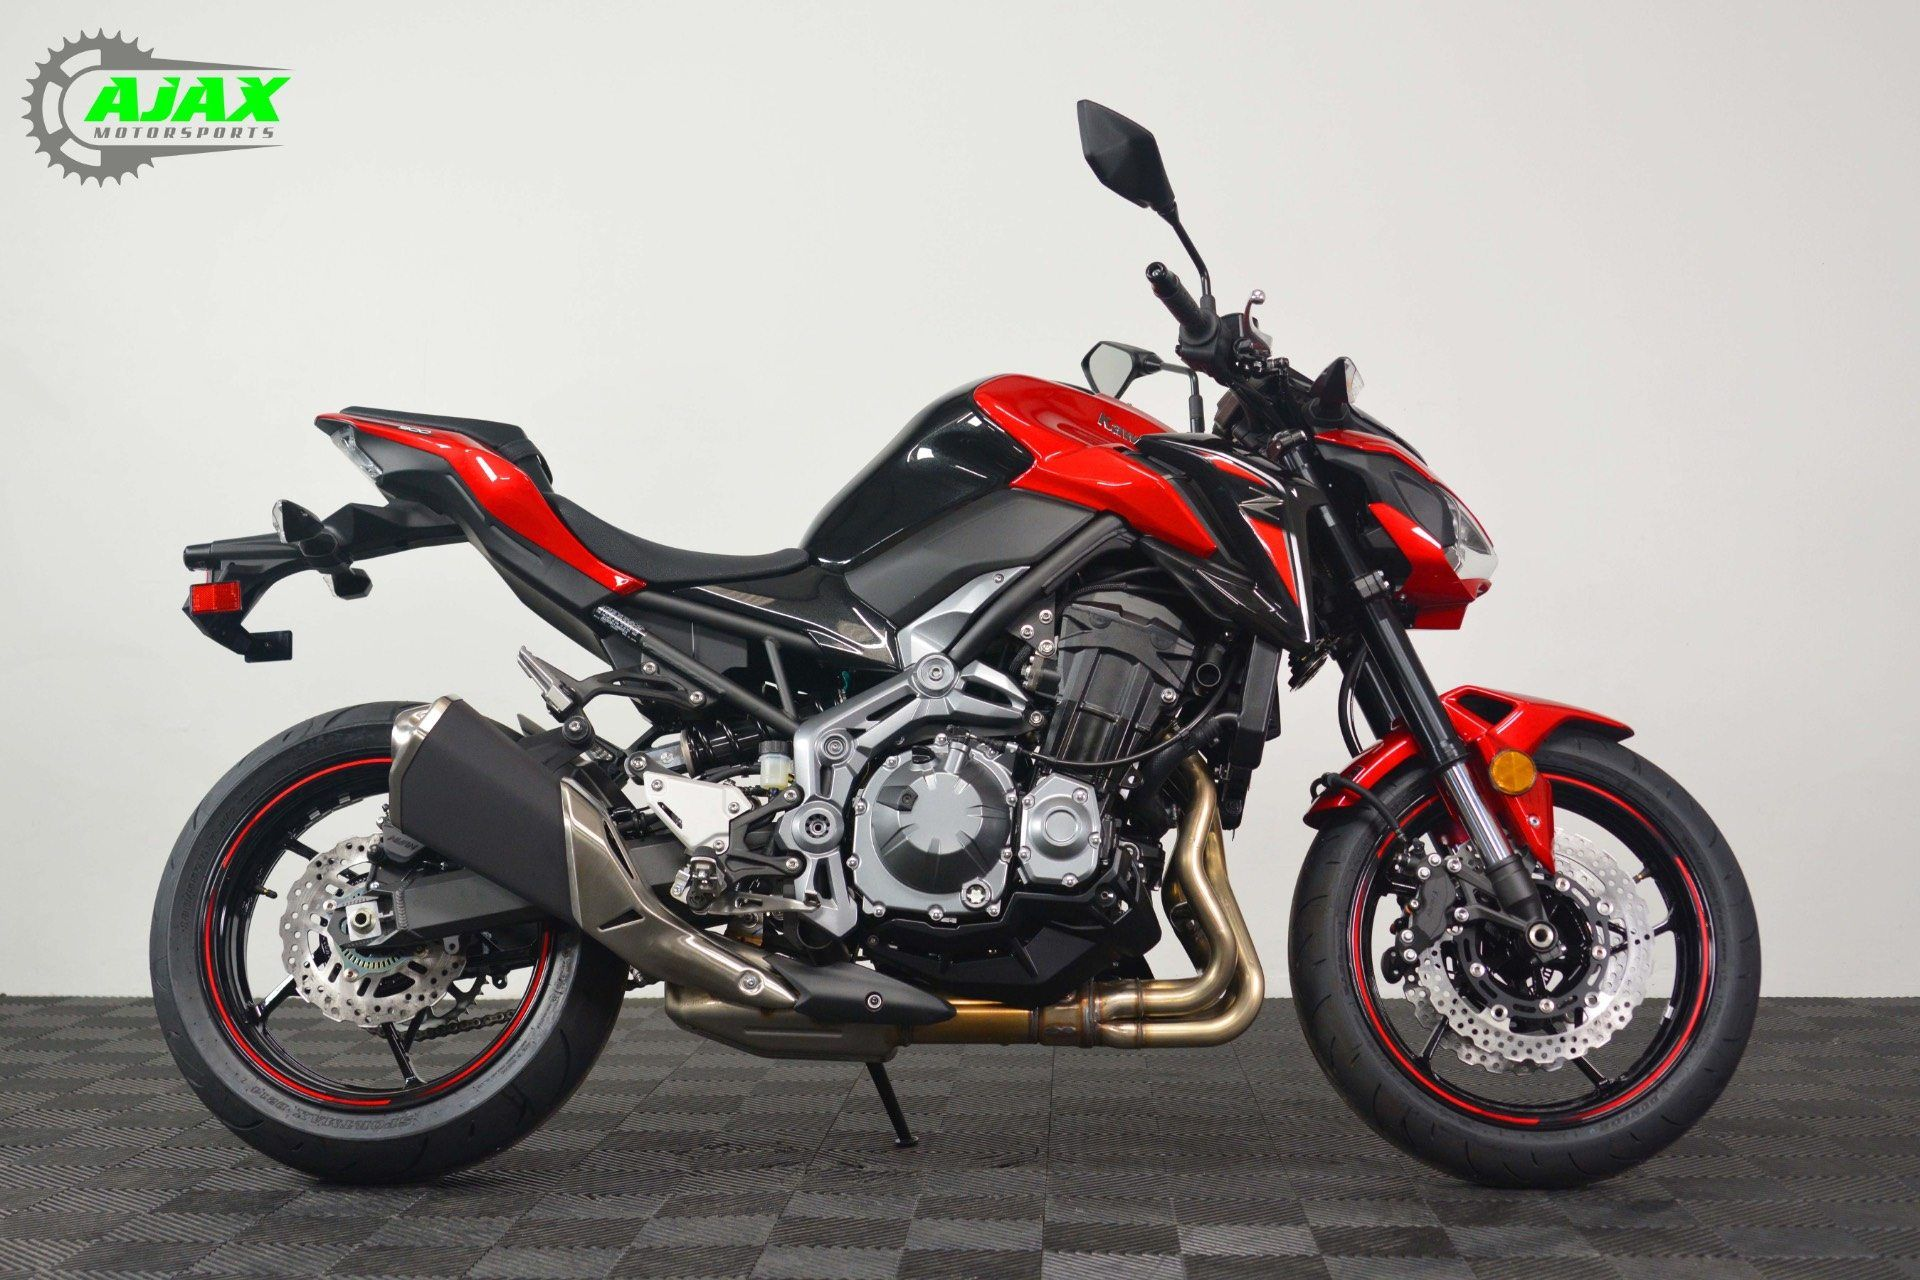 2018 Kawasaki Z900 ABS for sale 1319